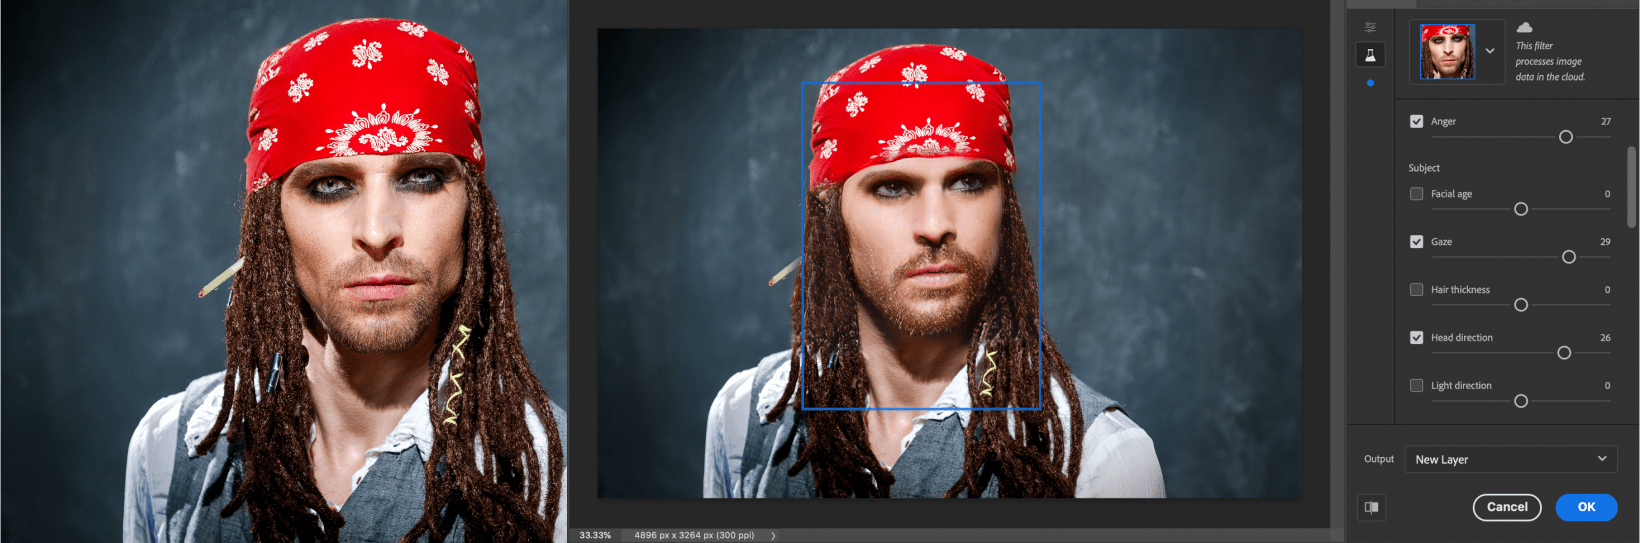 Adobe Released New Photoshop 22.0 Featuring Advanced AI-Powered Filters 2